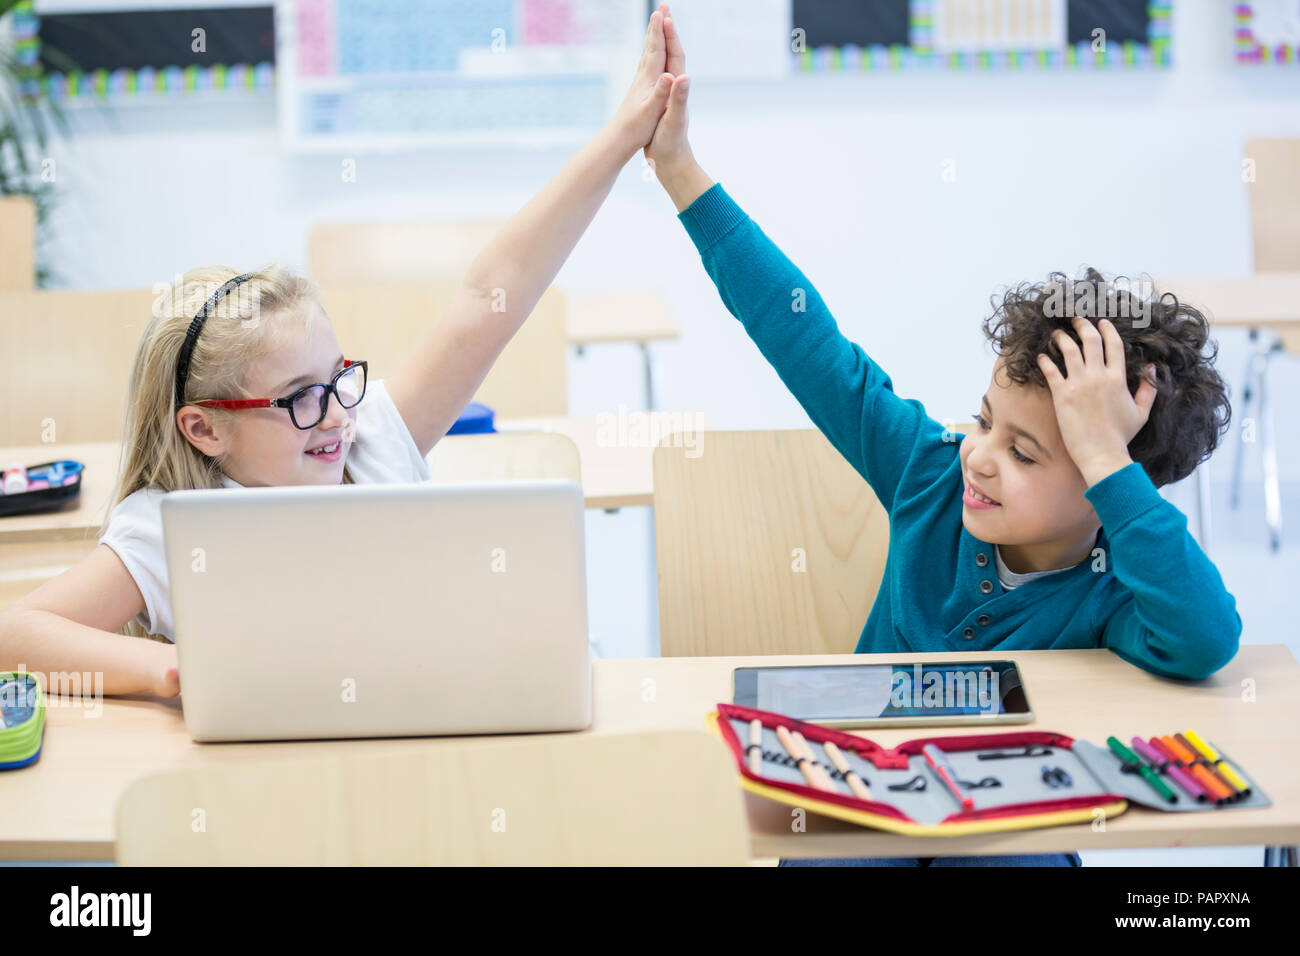 Schoolboy and schoolgirl with laptop high fiving in class - Stock Image